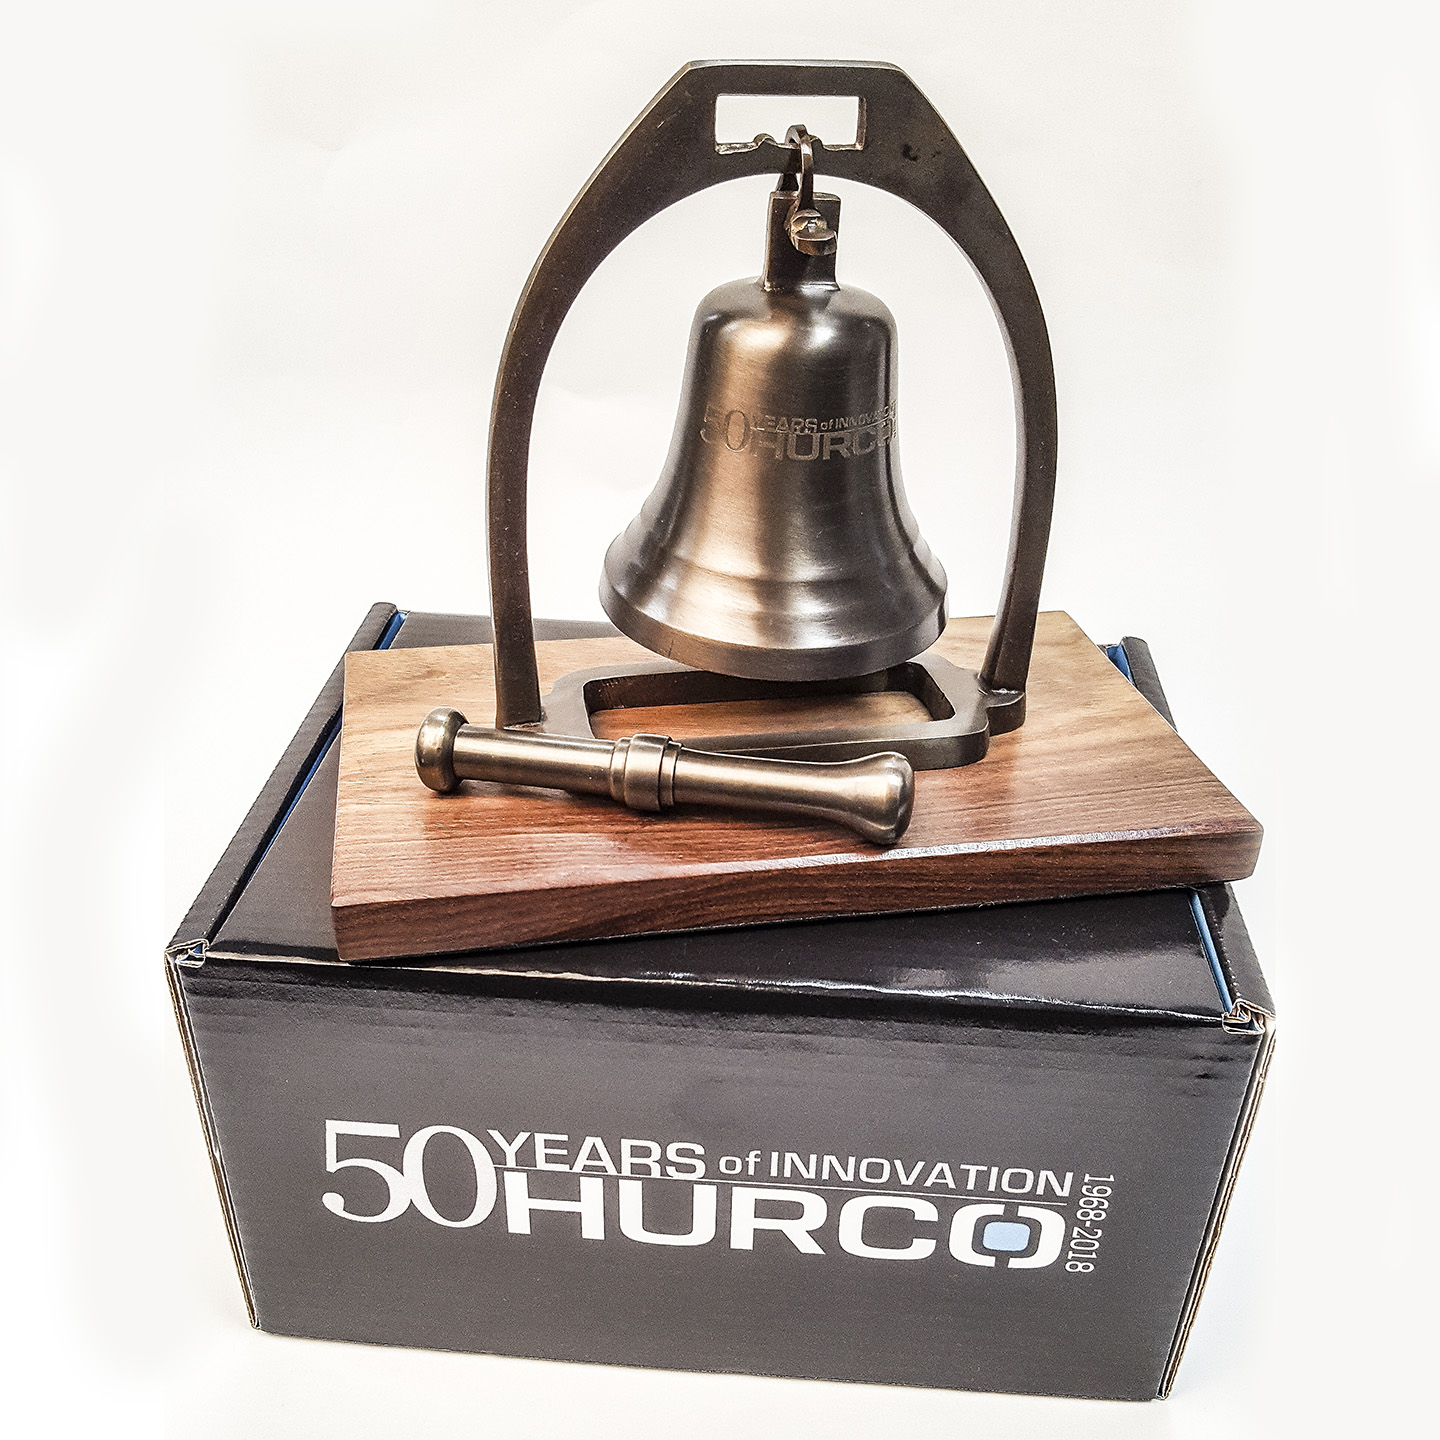 Hurco is heading to the BIG Apple to Ring the Closing Bell